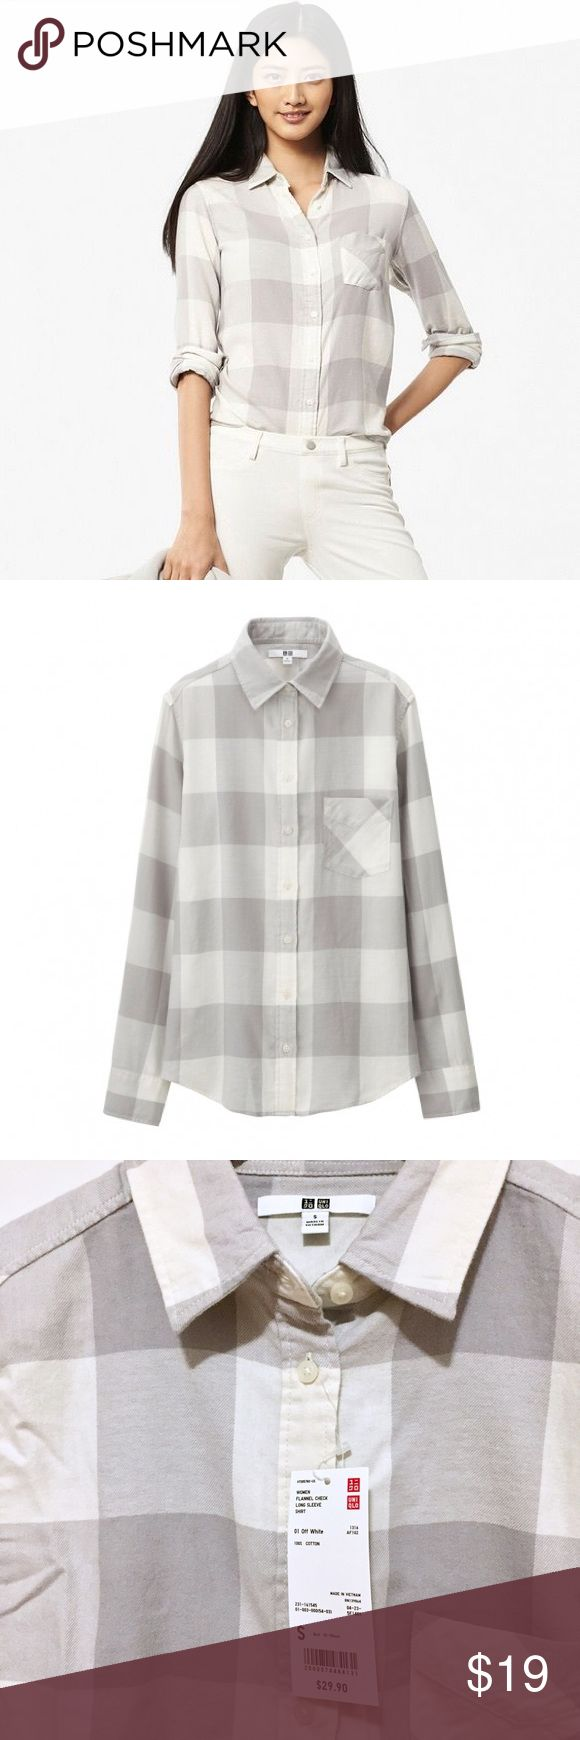 NWT Uniqlo Long Flannel Shirt Unique patterned long sleeve flannel shirt. New with tag and in a perfect condition. Size Small (2-4), comfortable fit. Wear it with jeans/leggings for effortless look or match with a cute skirt/dress. Uniqlo Tops Button Down Shirts